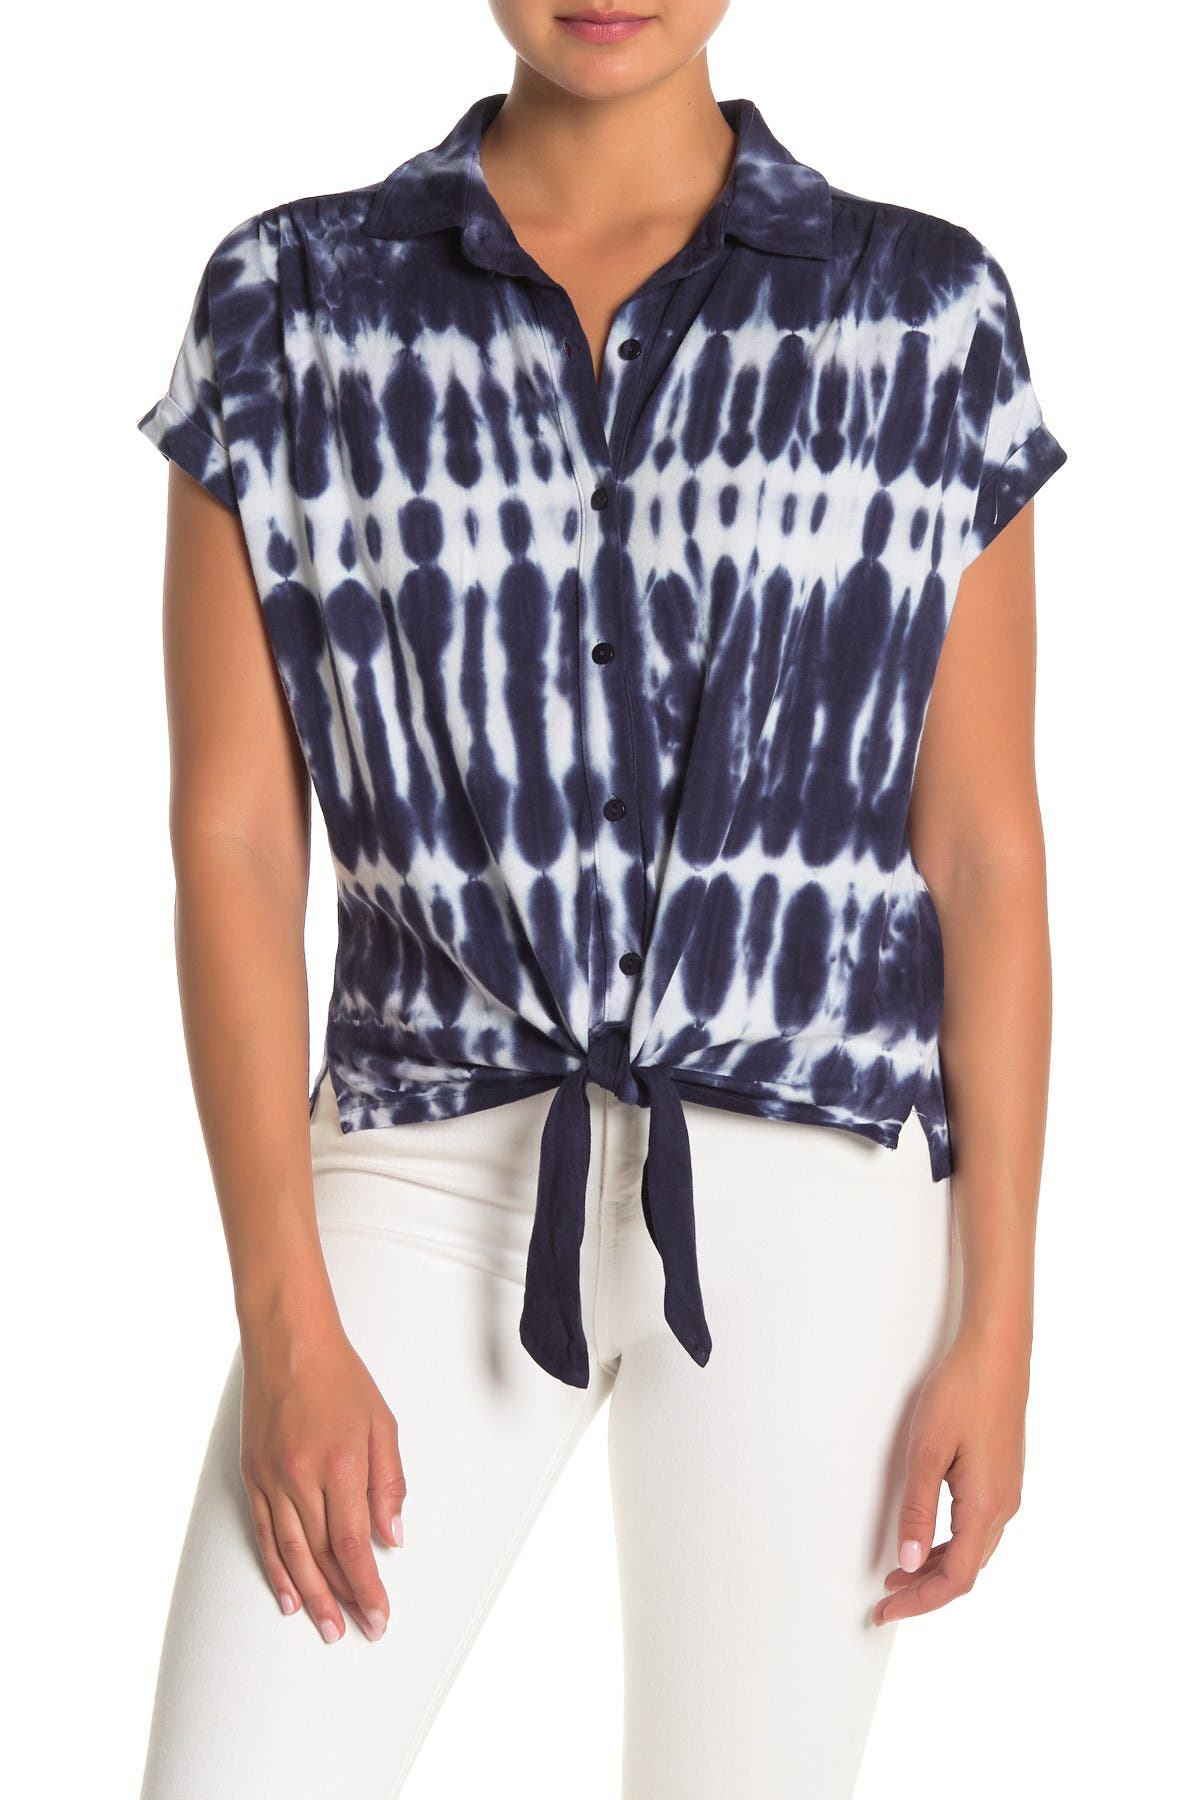 Image of C & C California Tie-Dye Knotted Top